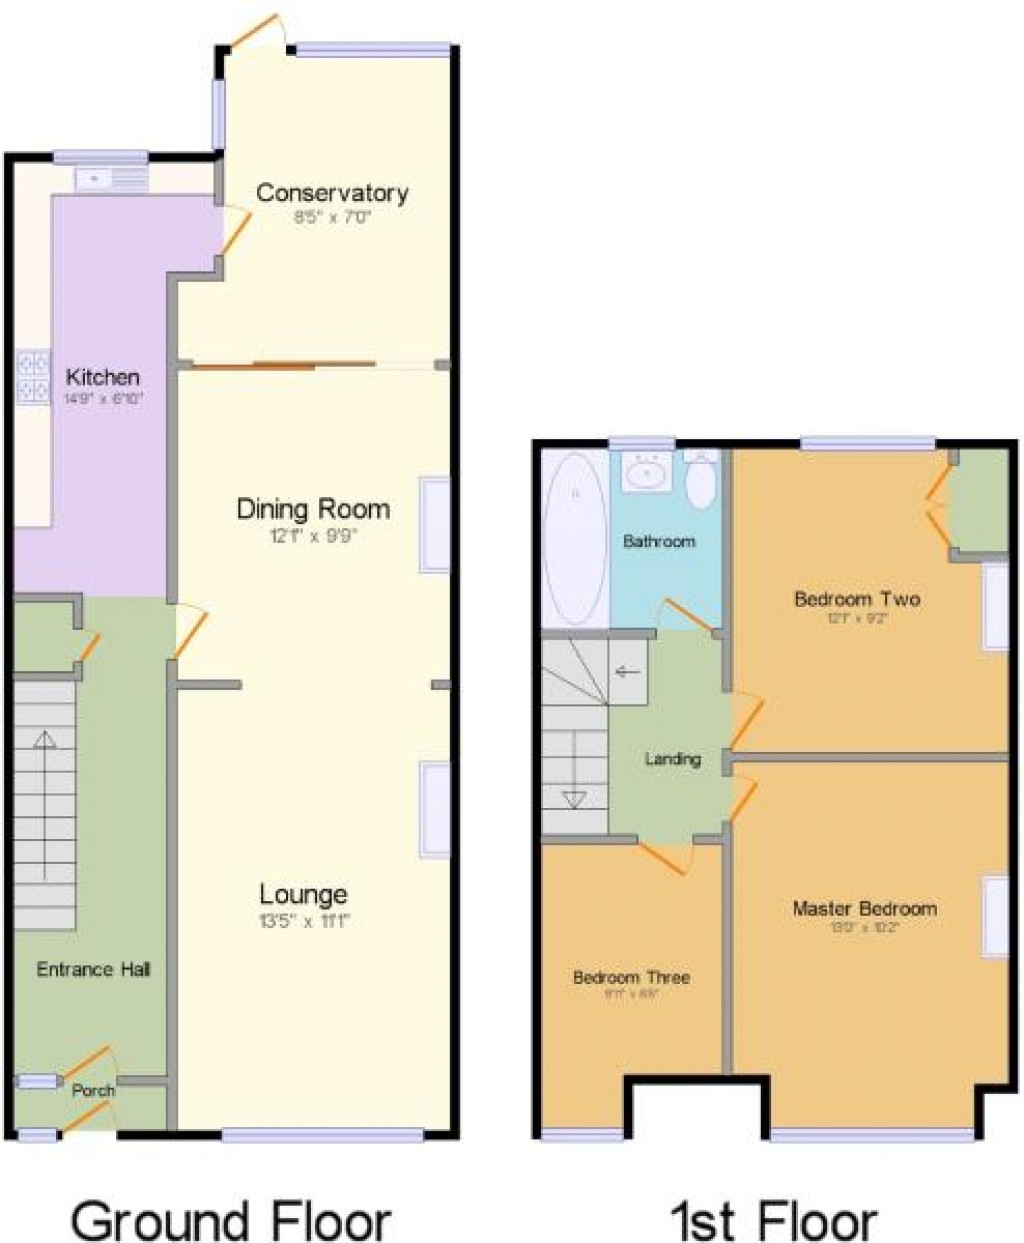 Floorplans For Aviemore Way, Beckenham